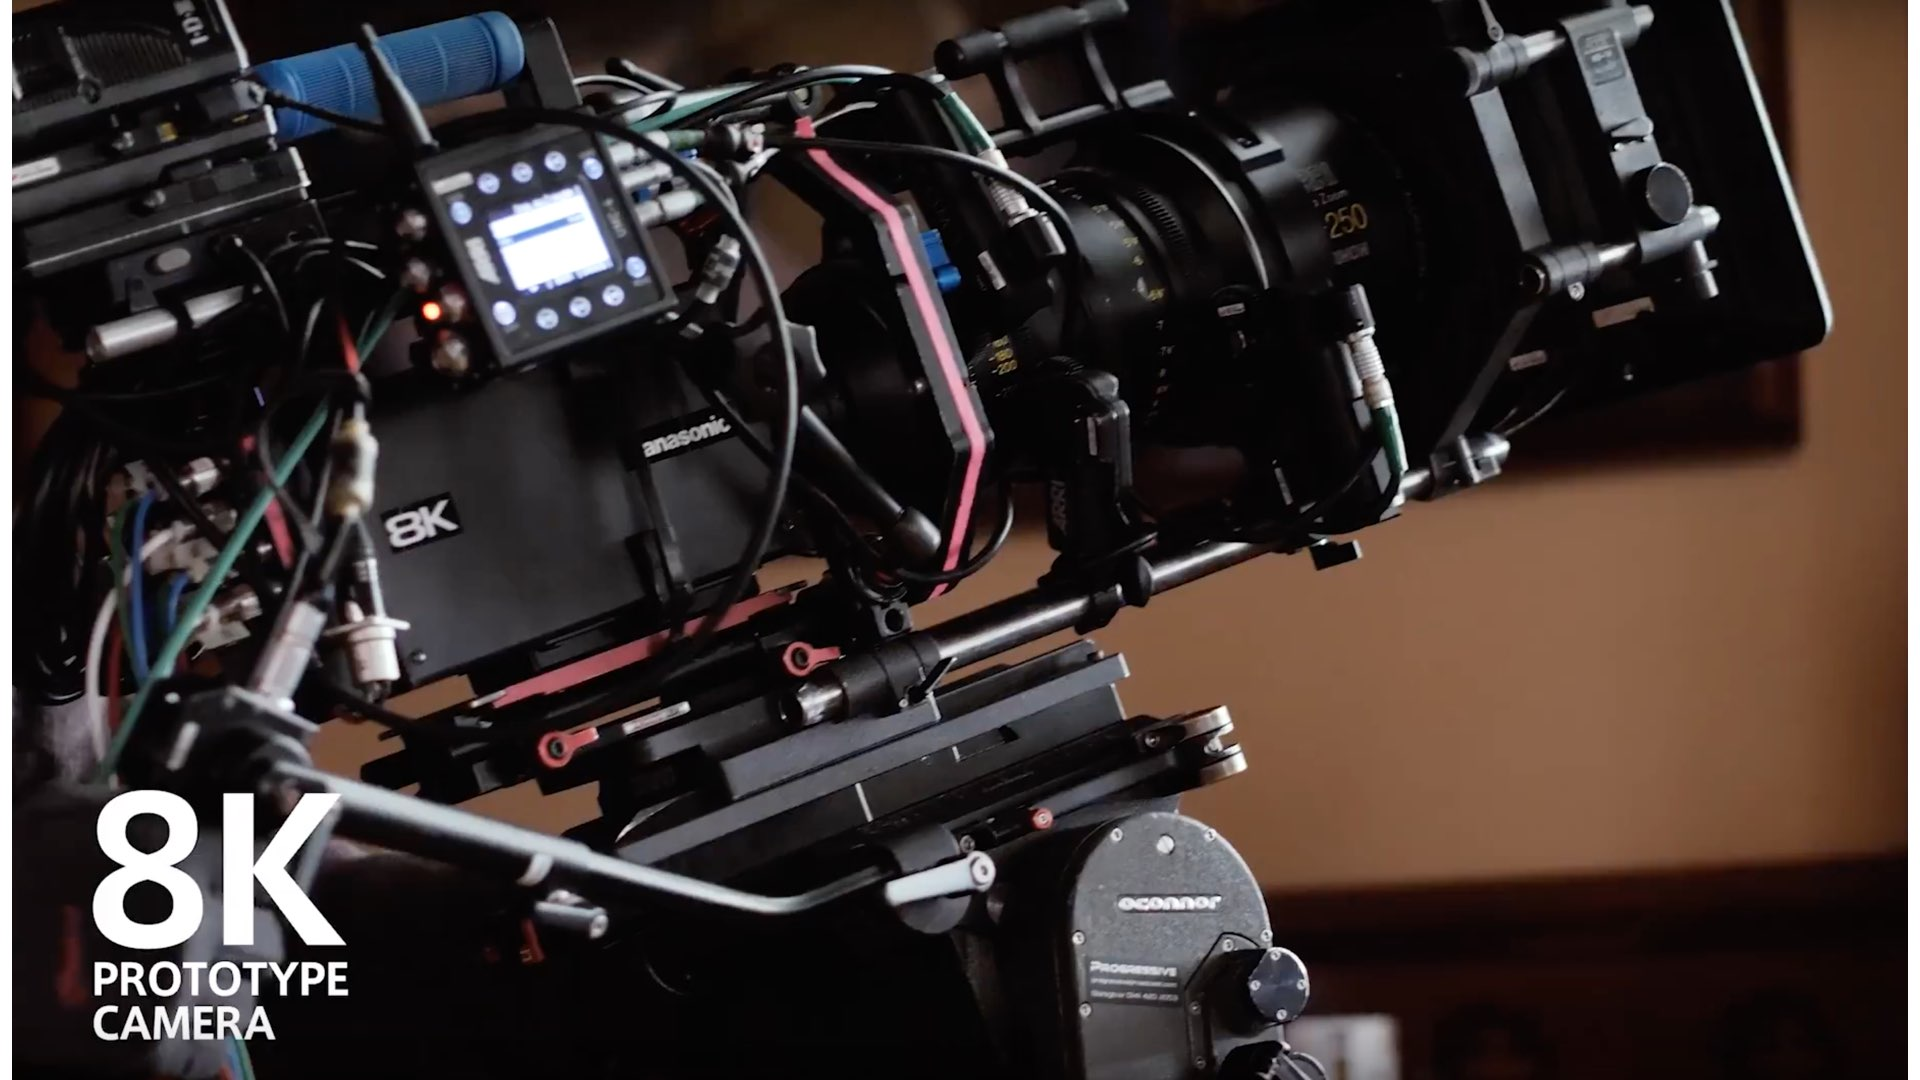 The Panasonic 8K Prototype Camera was Used in Short Film Production